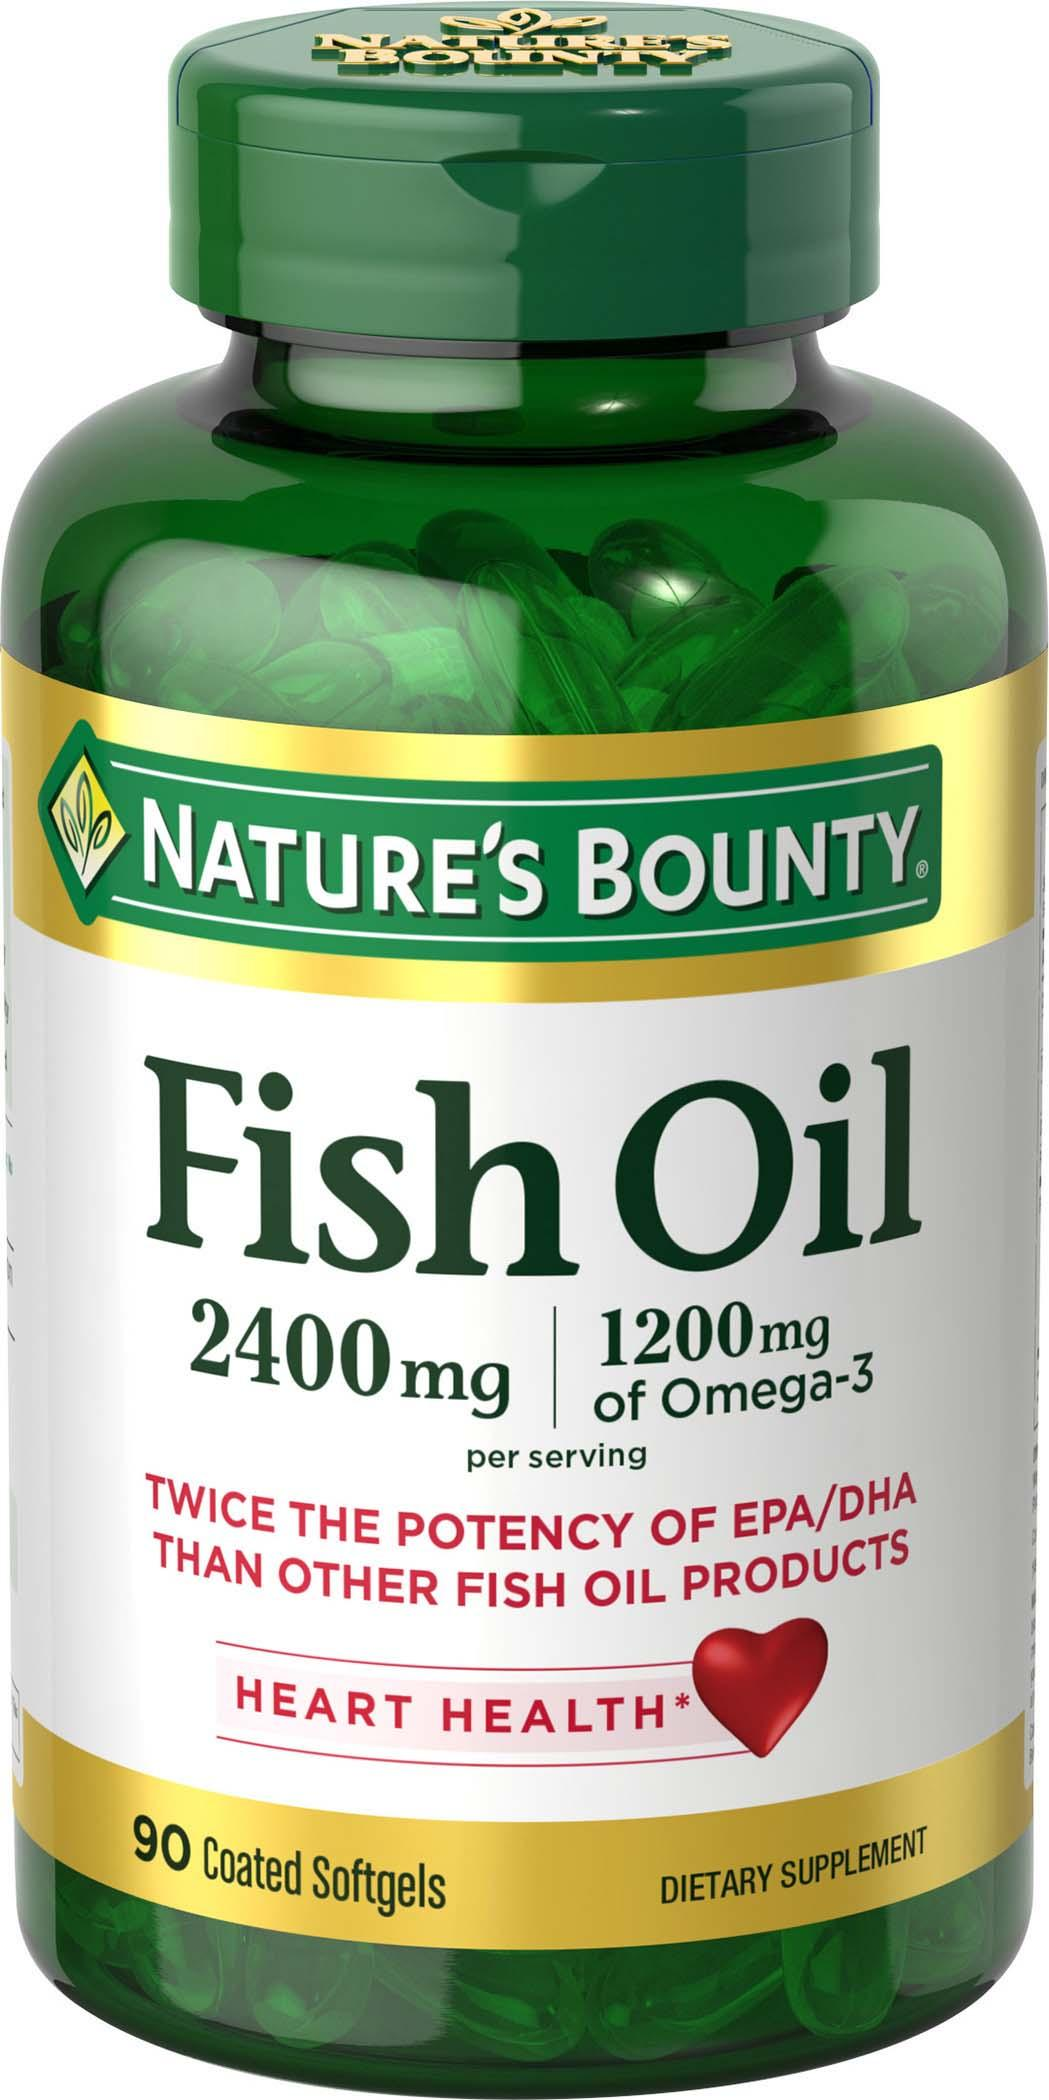 Nature 39 s bounty fish oil 2400 mg double for Fish oil pills for buttocks review